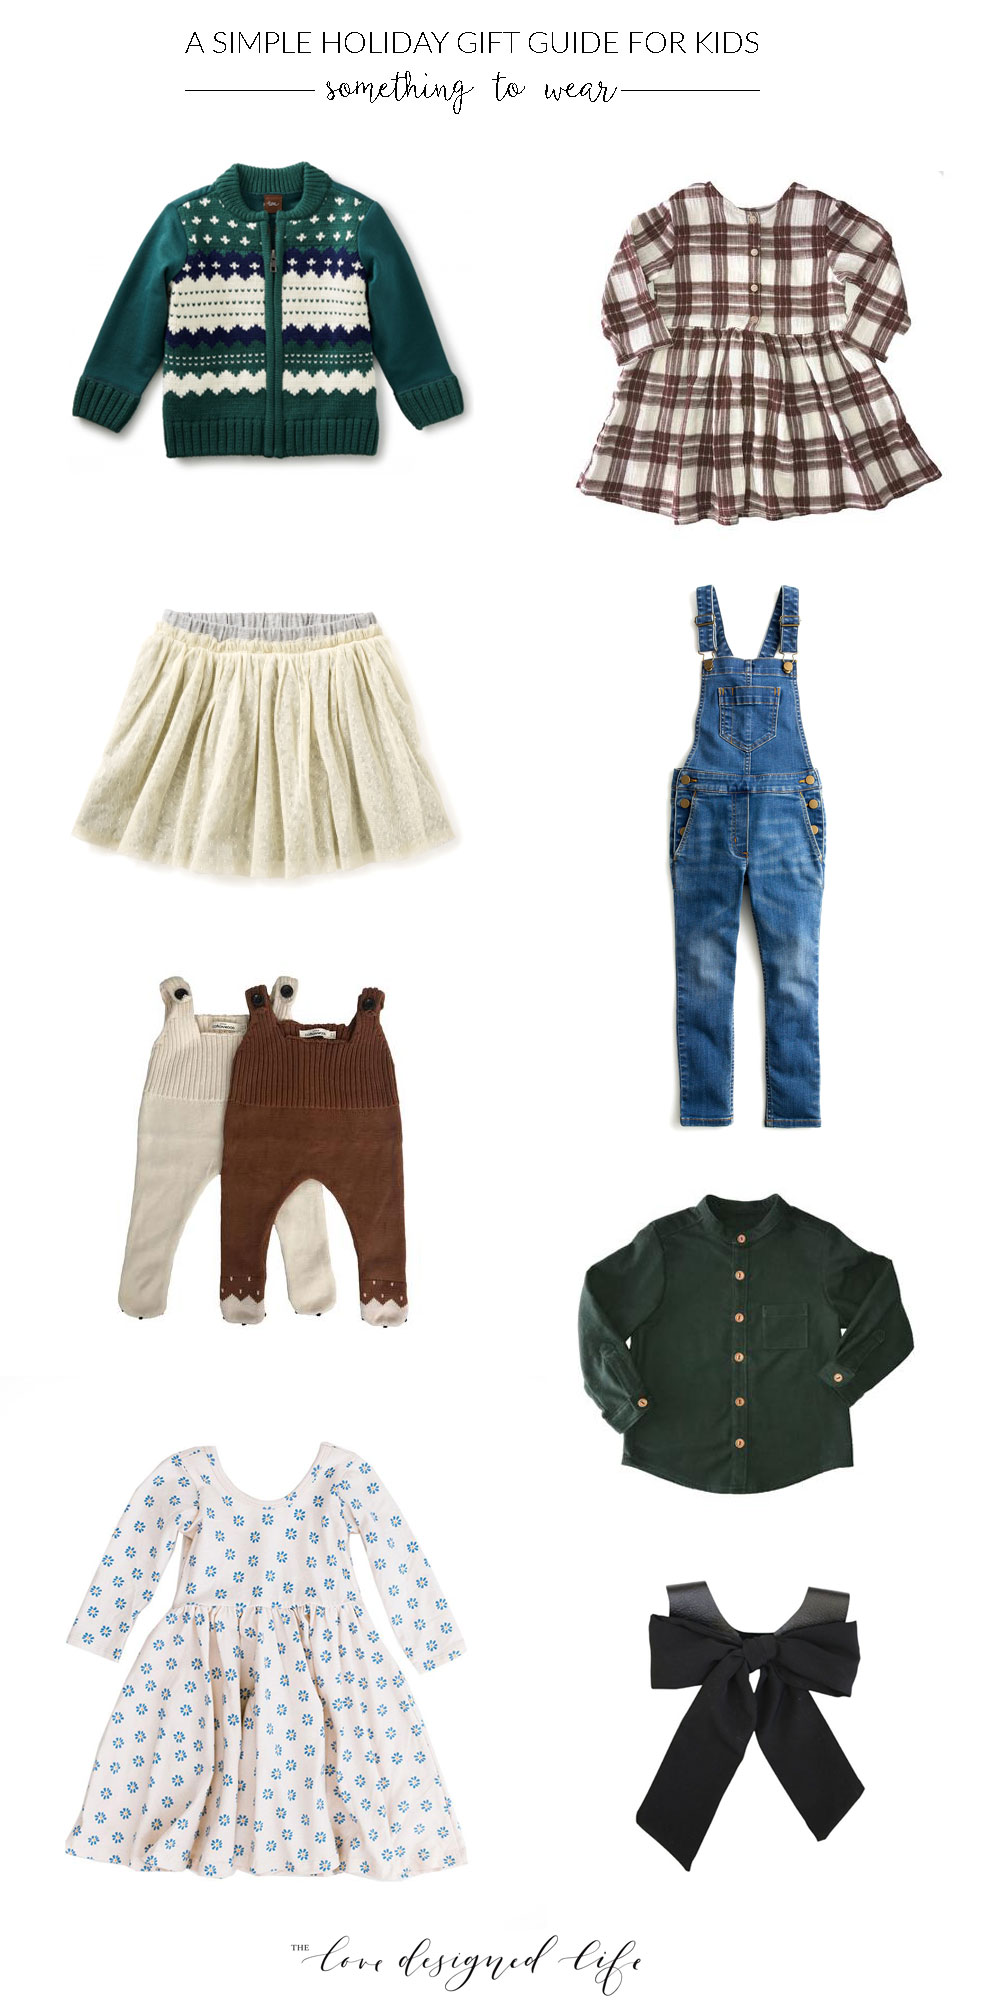 a simple holiday gift guide for kids - something to wear | thelovedesignedlife.com